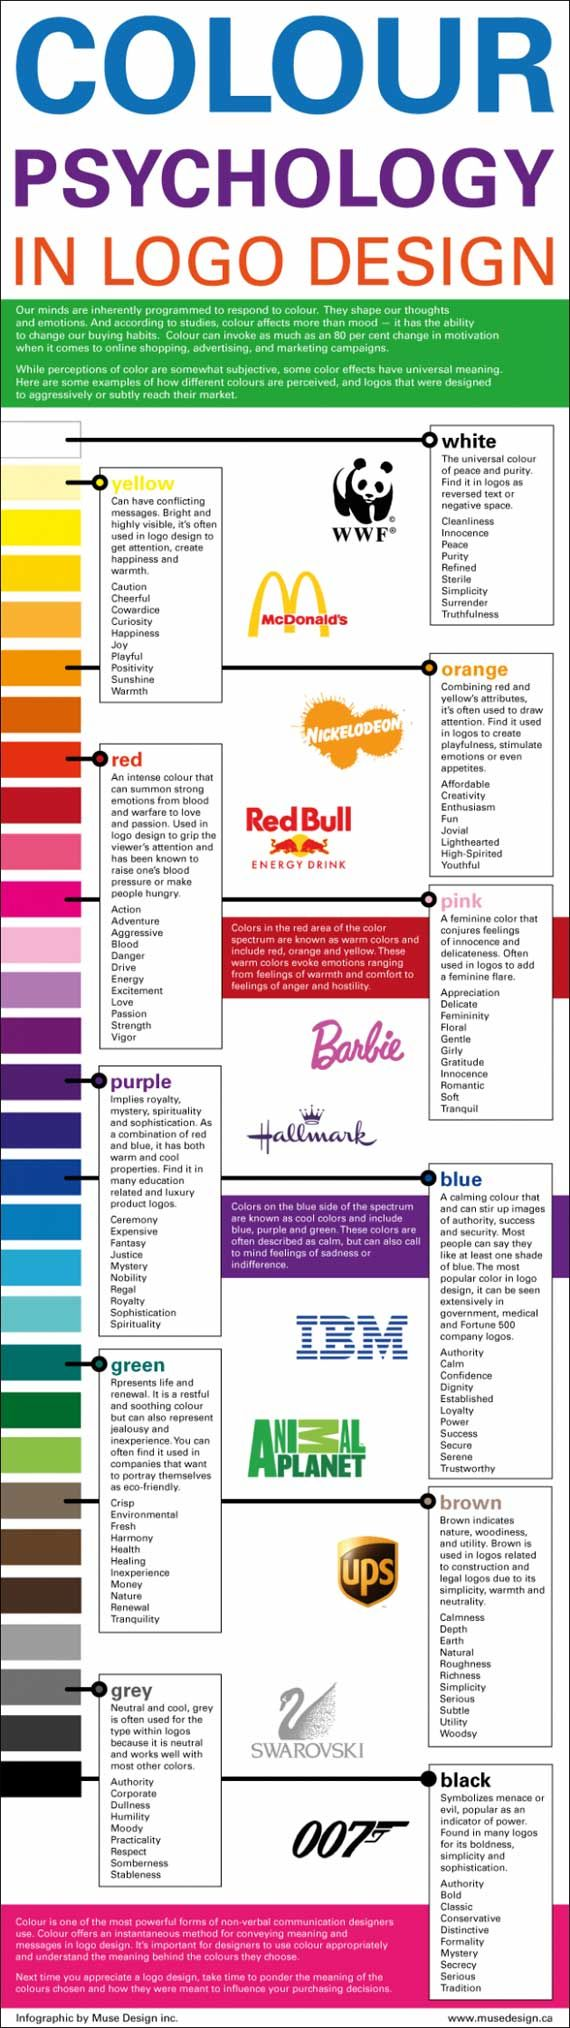 interesting colour theory.